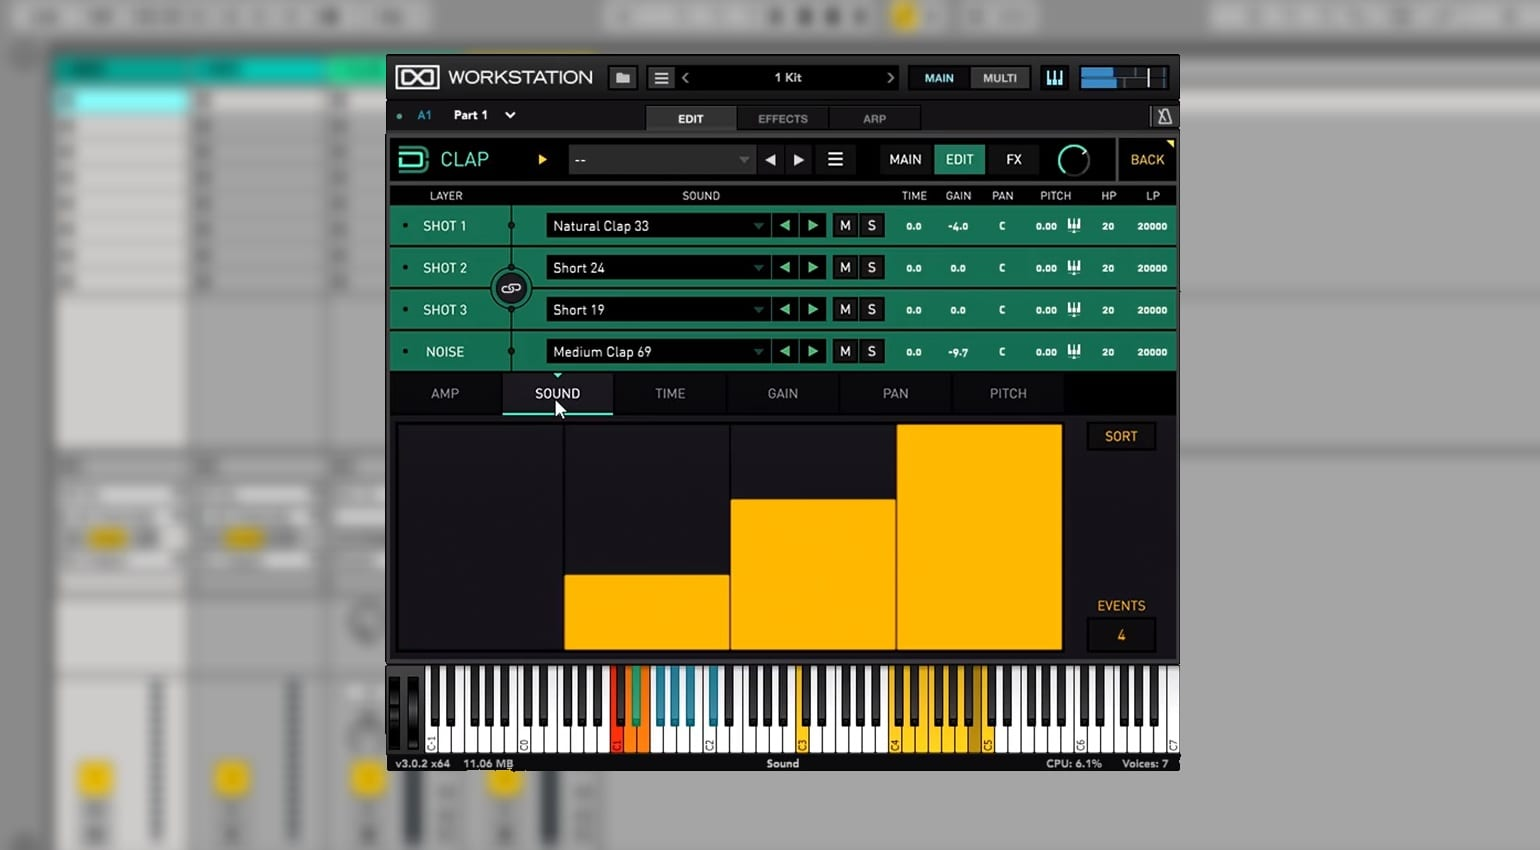 UVI lets you become a Drum Designer by layering synths and samples